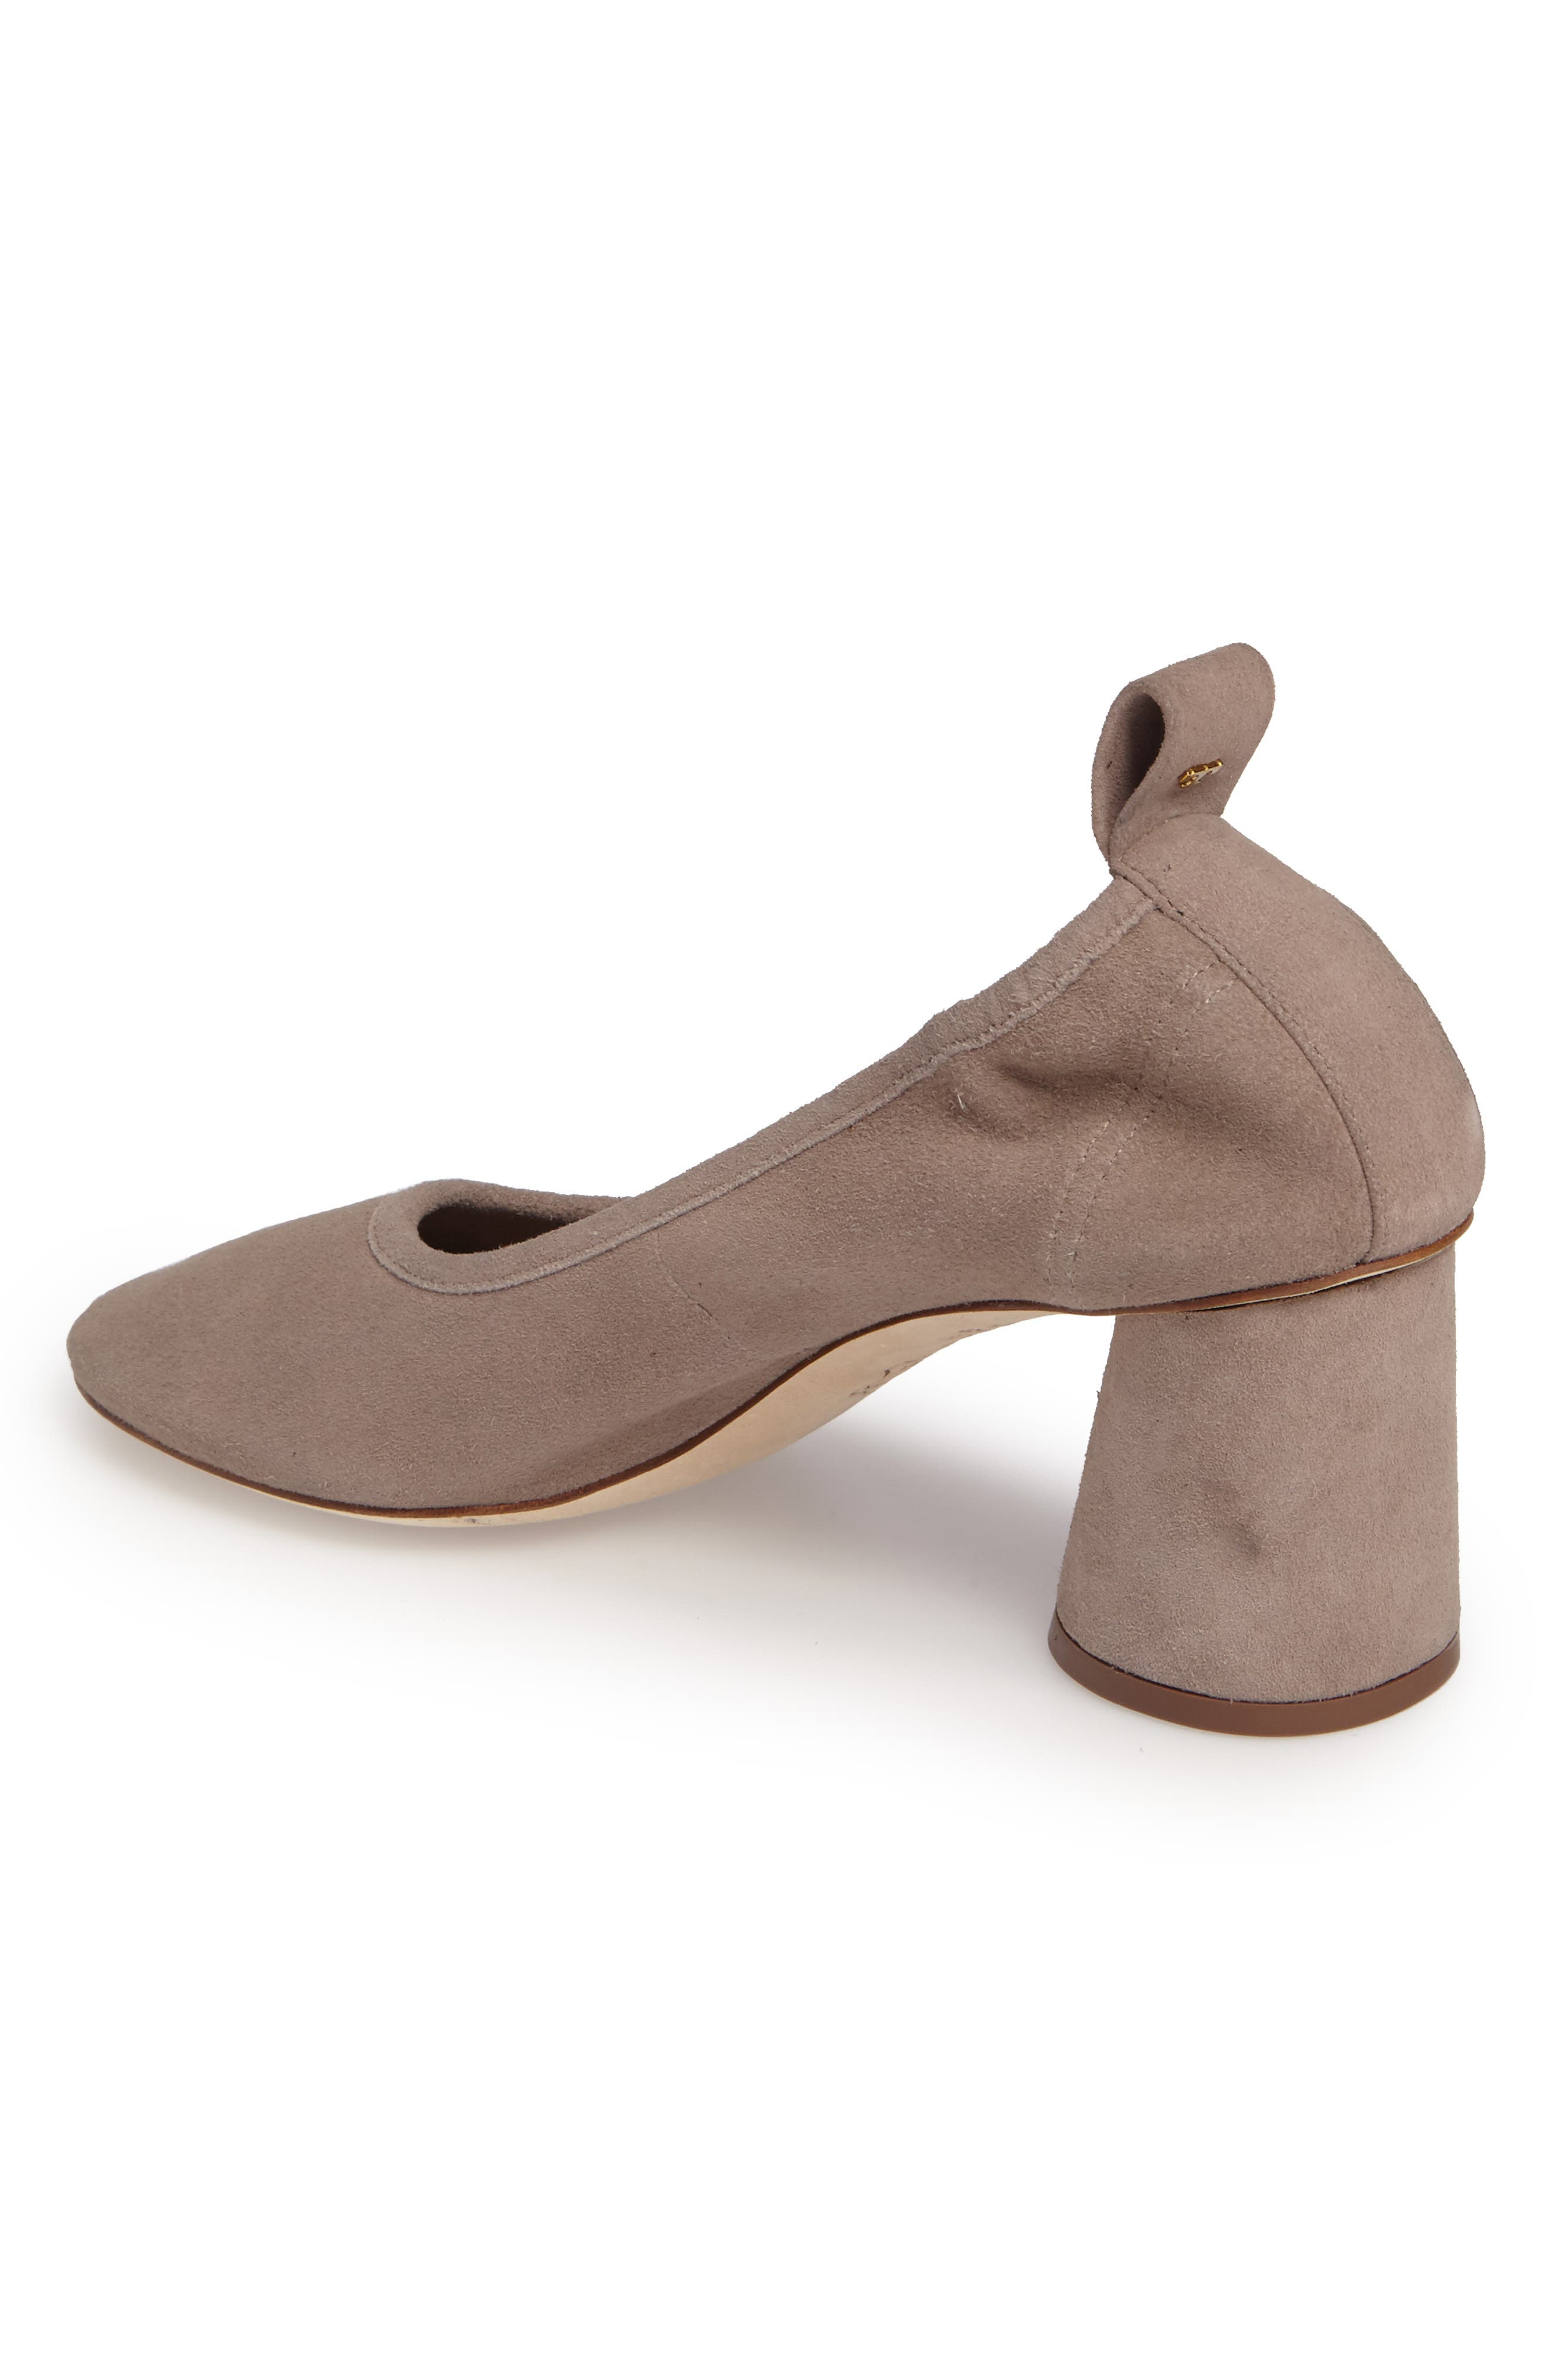 Therese Statement Heel Pump,                             Alternate thumbnail 2, color,                             Duststorm